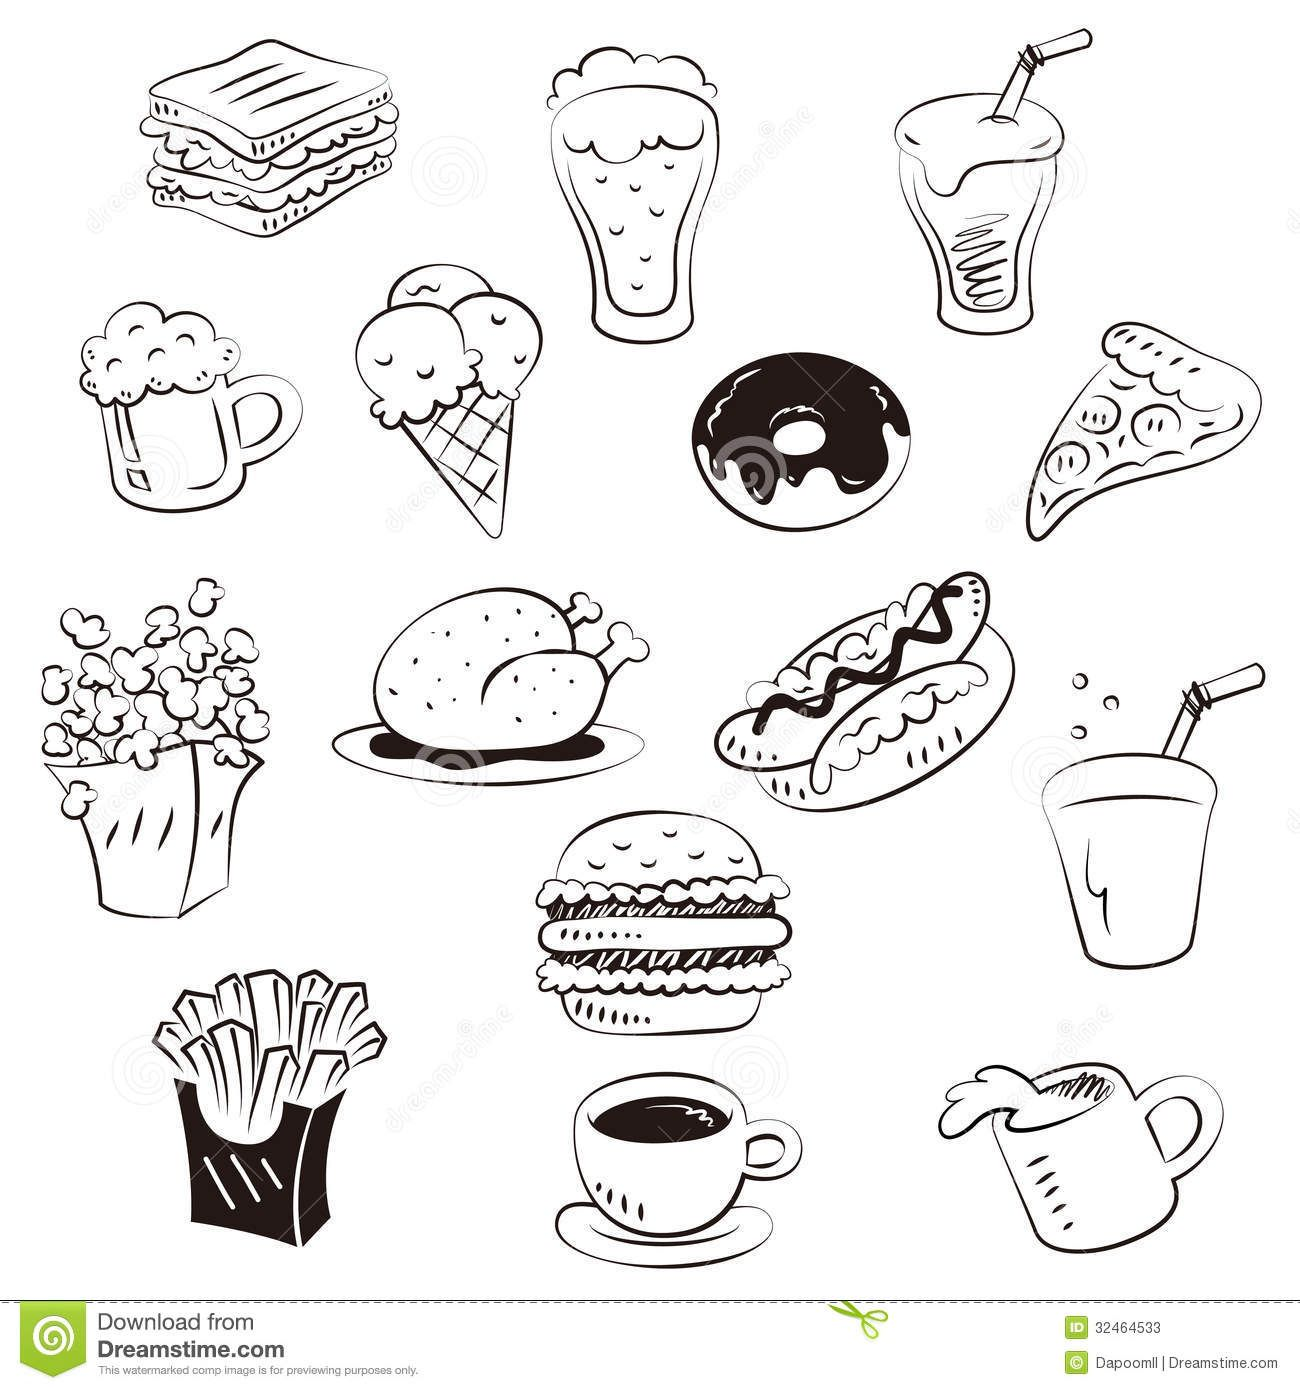 49+ Cute fast food coloring pages information